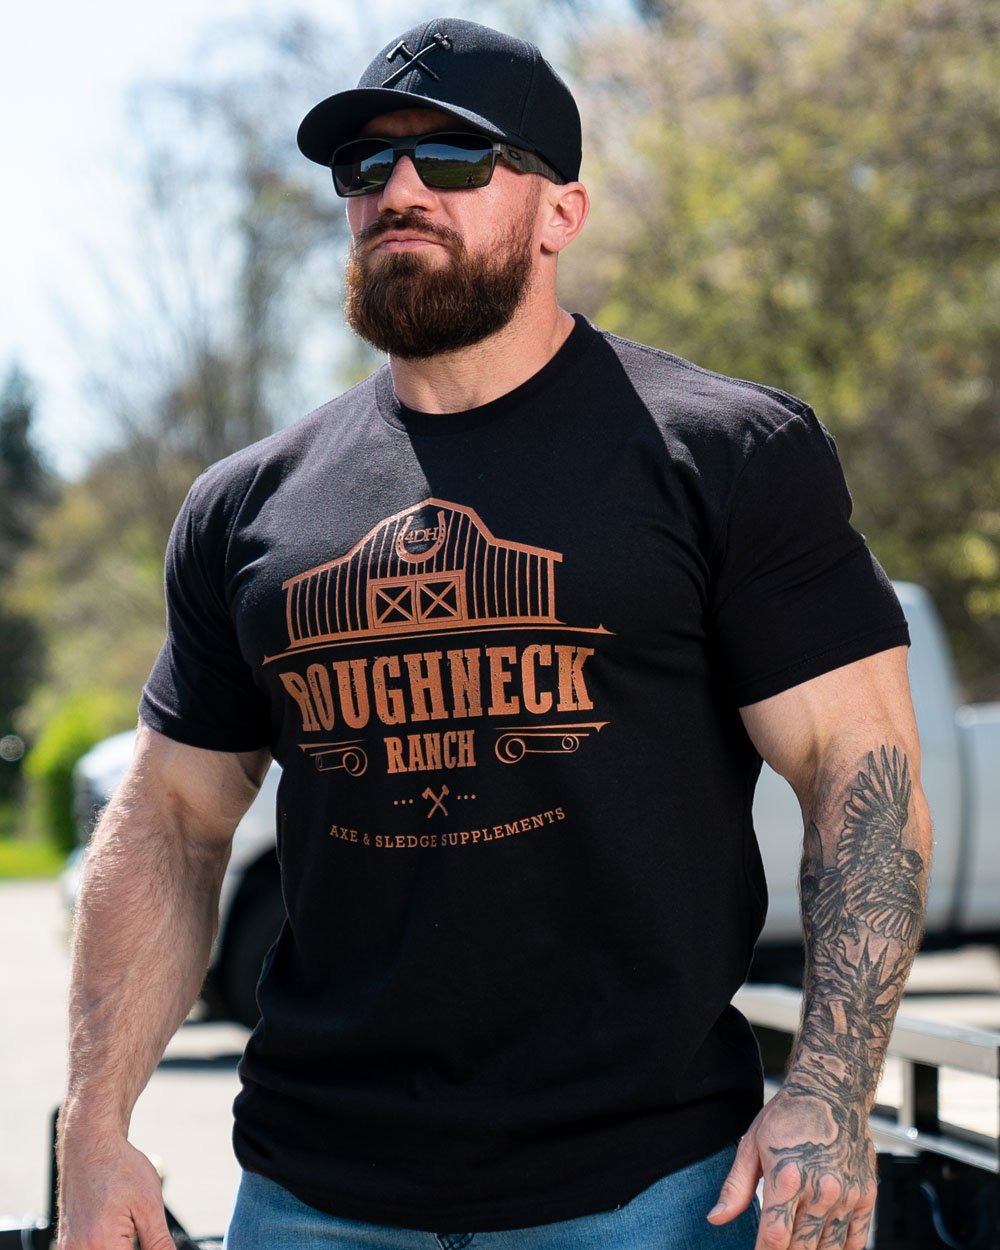 Burnt Orange on Black Roughneck Ranch Tee